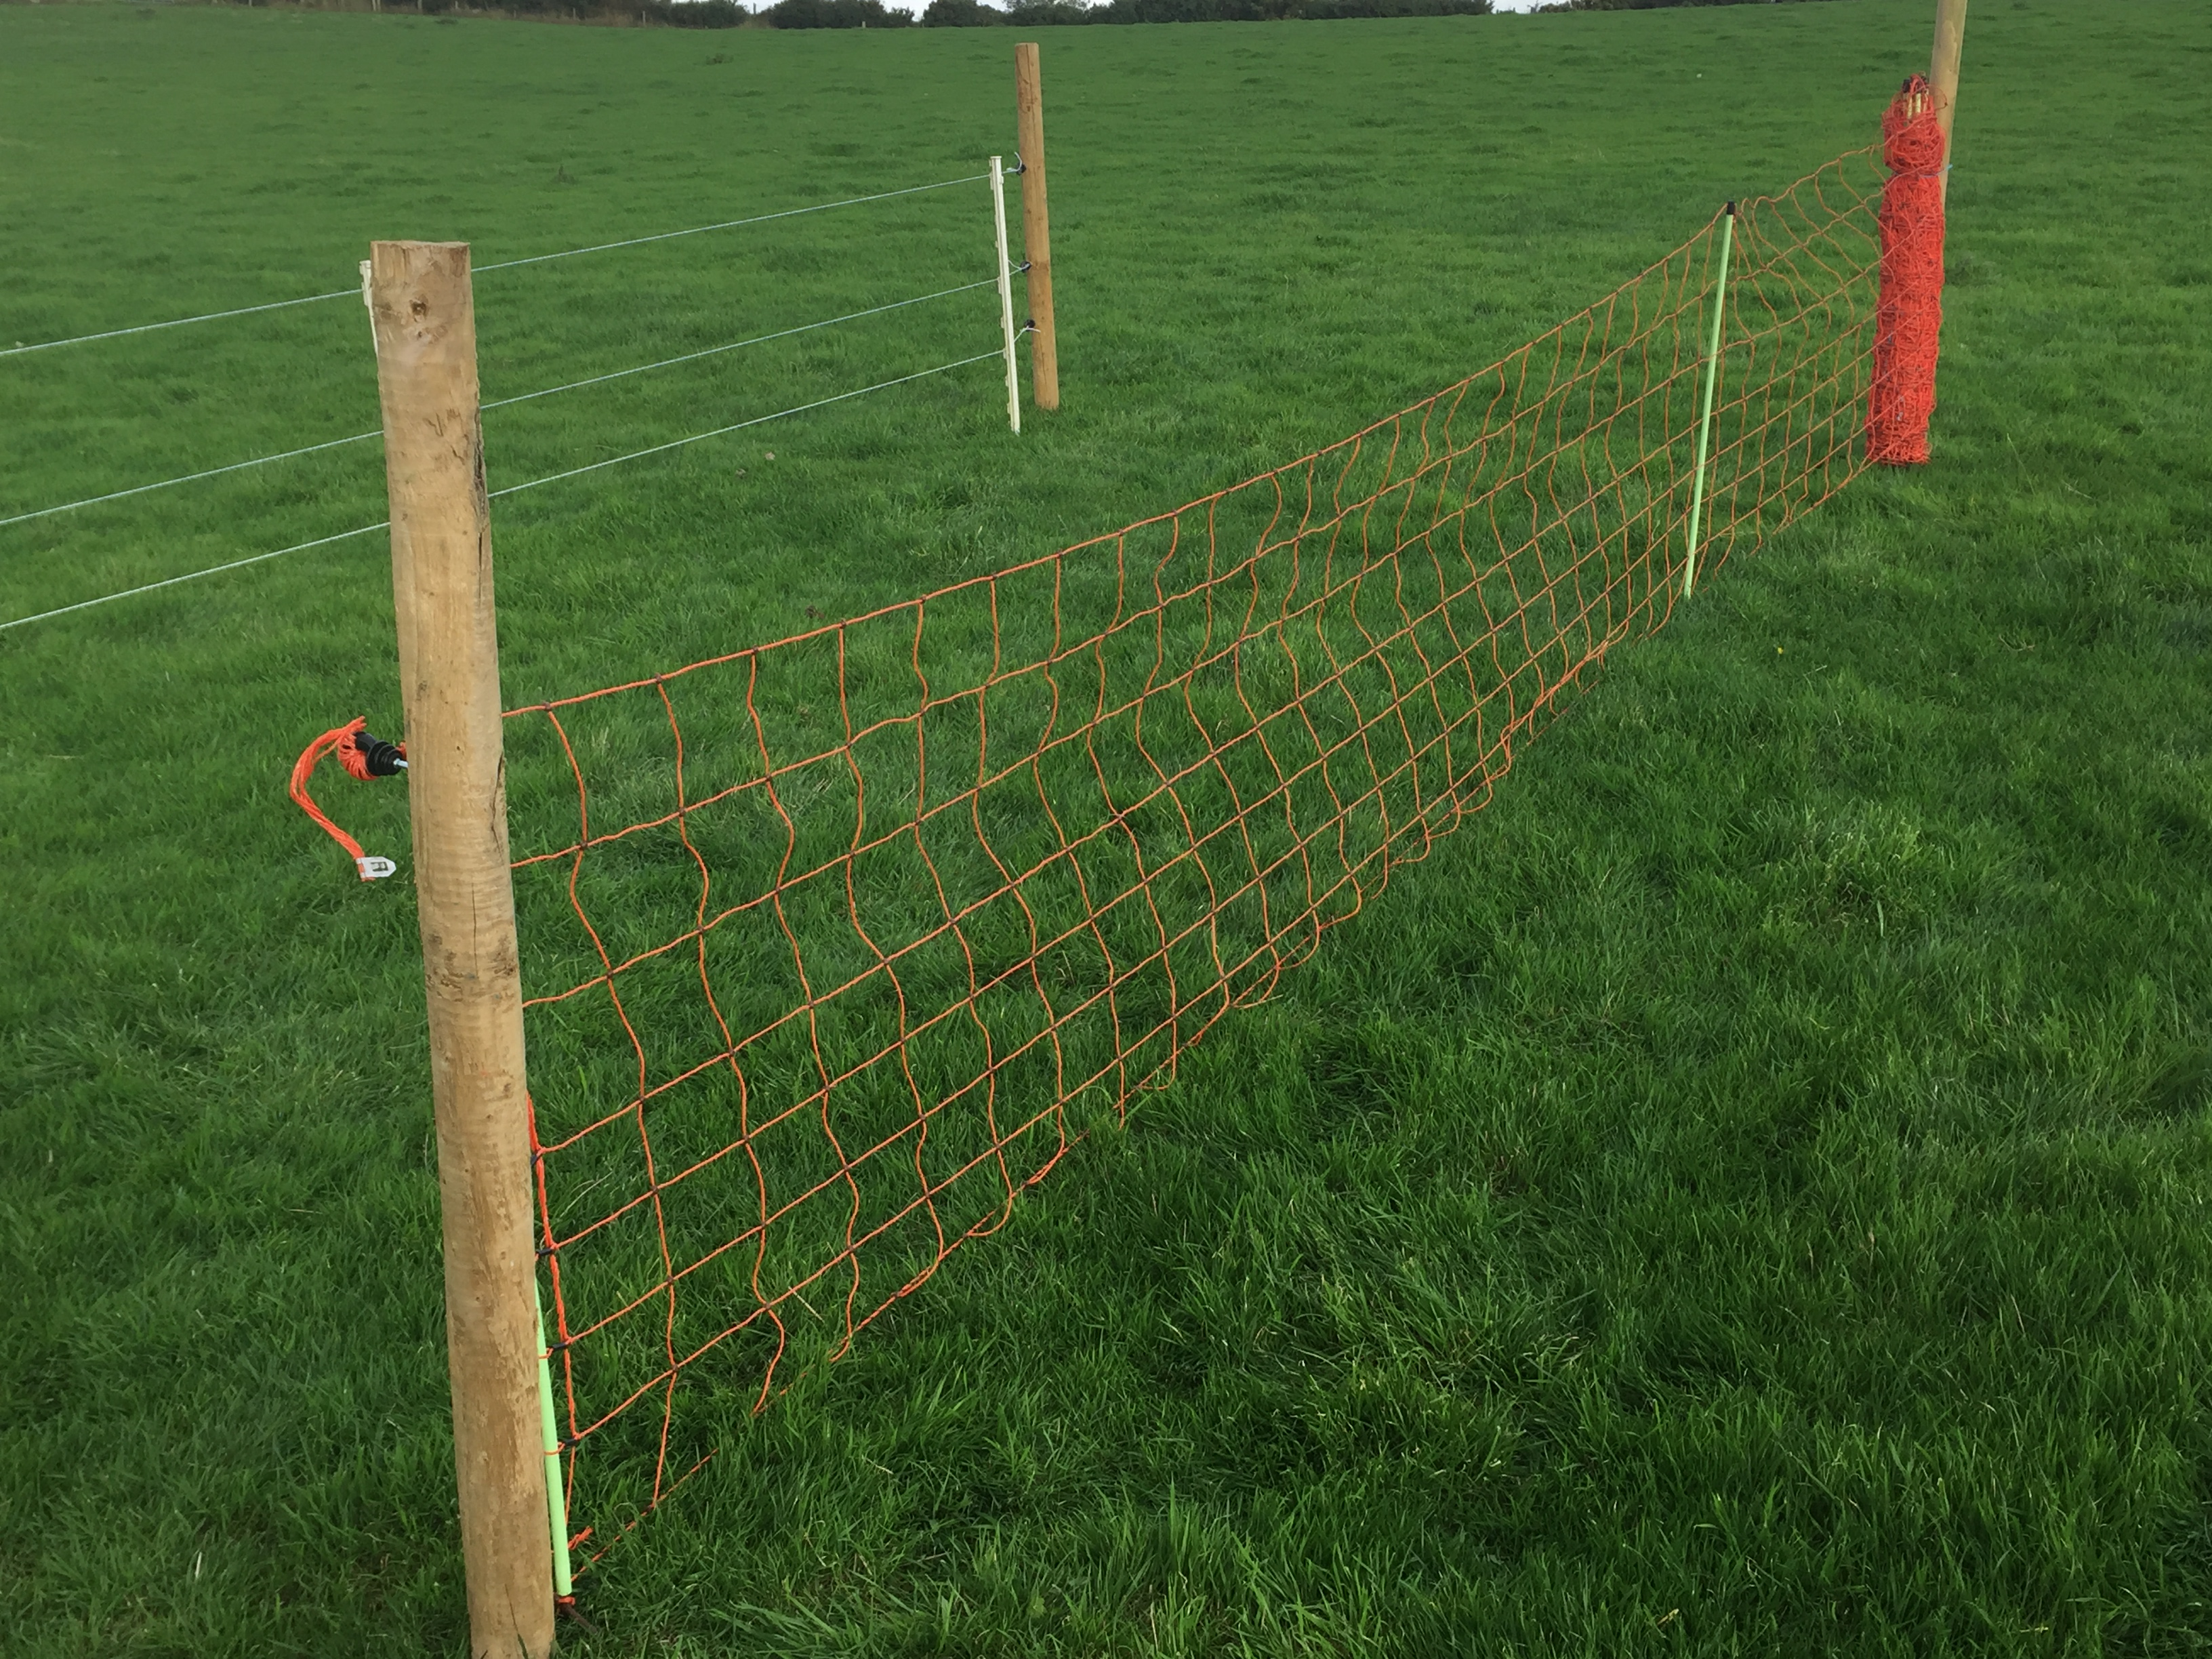 Pics: Cost-effective temporary sheep fencing options on show